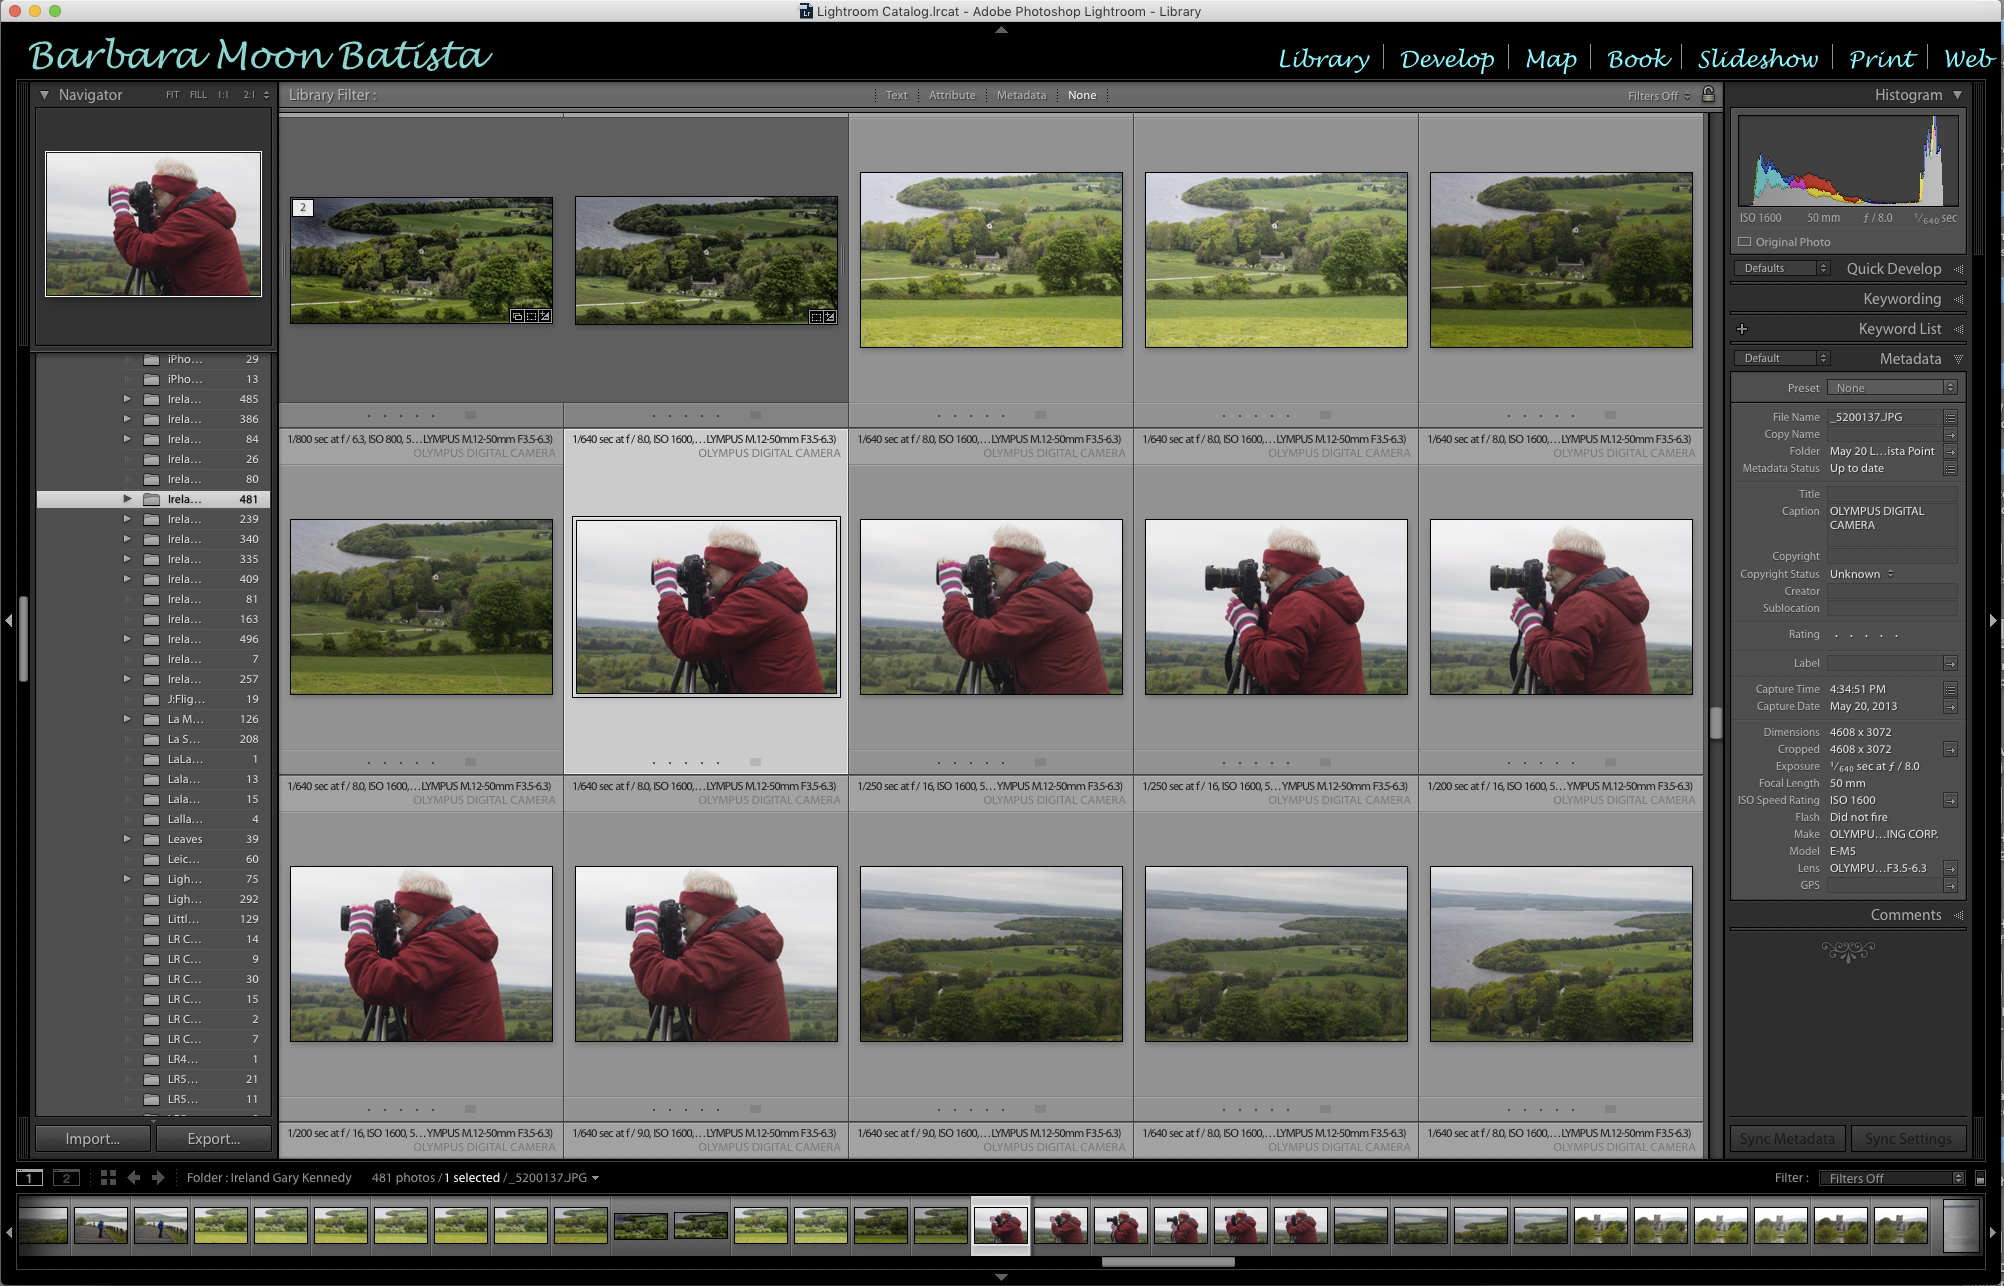 Lightroom Library Preview Screen